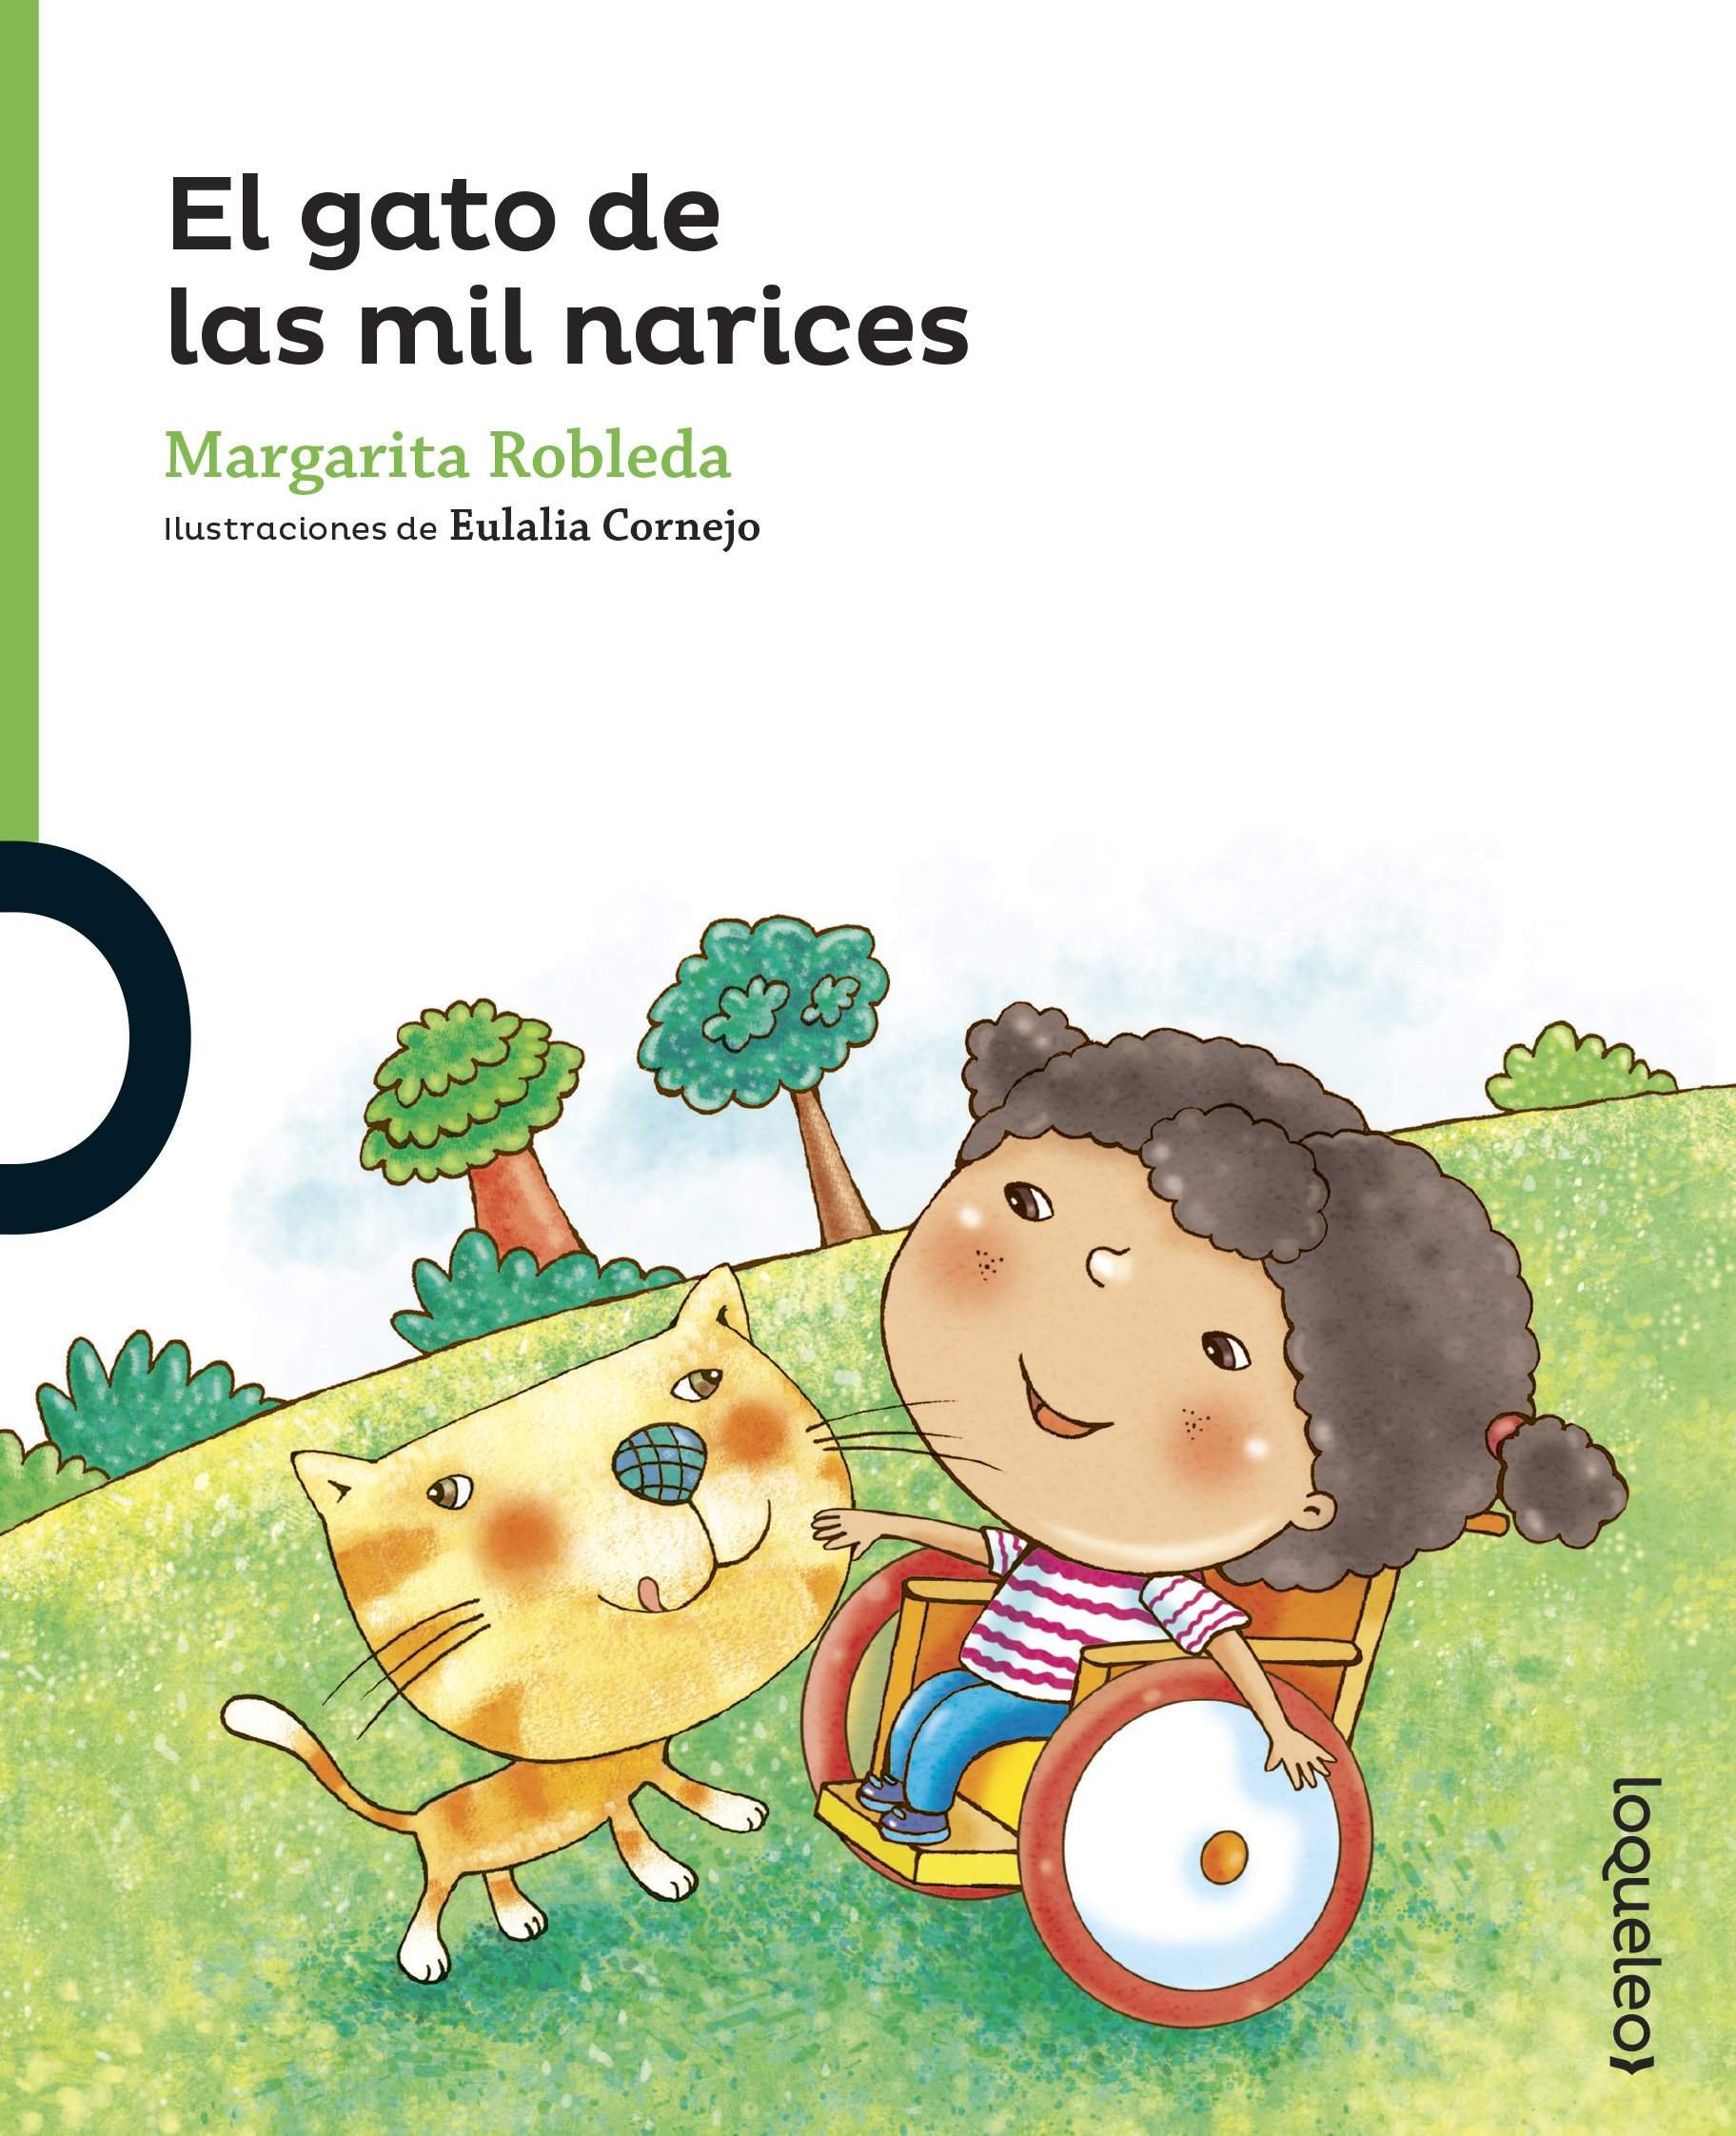 El gato de las mil narices / The Cat with the Thousand Noses (Serie Verde / Cuentos Traviesos) (Spanish Edition) (Spanish) Mass Market Paperback – January ...